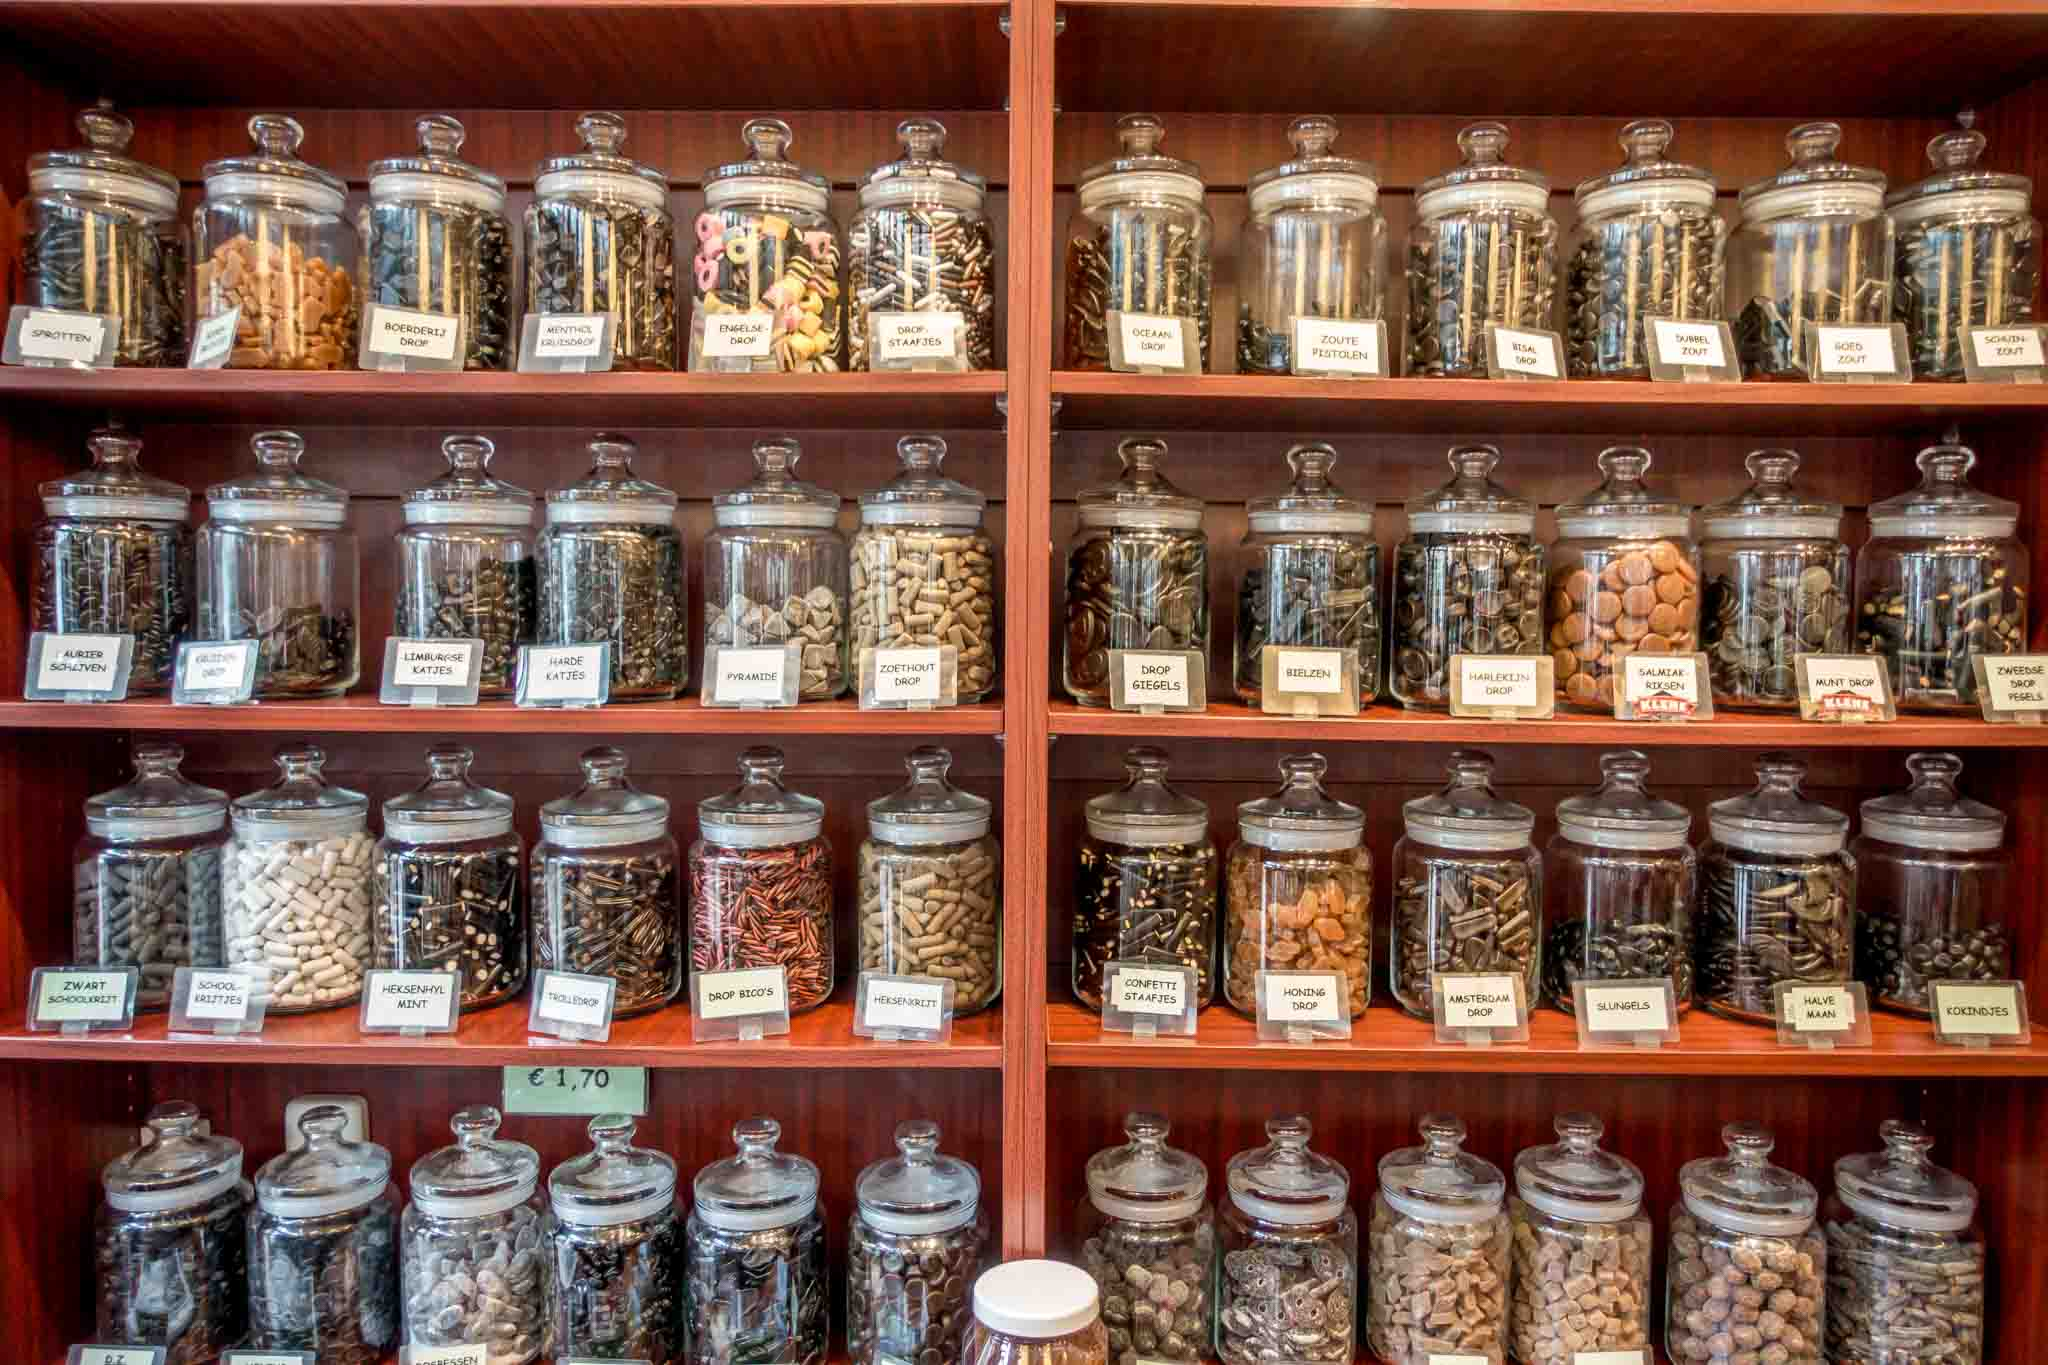 Many kinds of licorice (drop) in jars. Drop is such a popular Netherlands traditional food that the Dutch consume an average of 4 pounds per person each year.